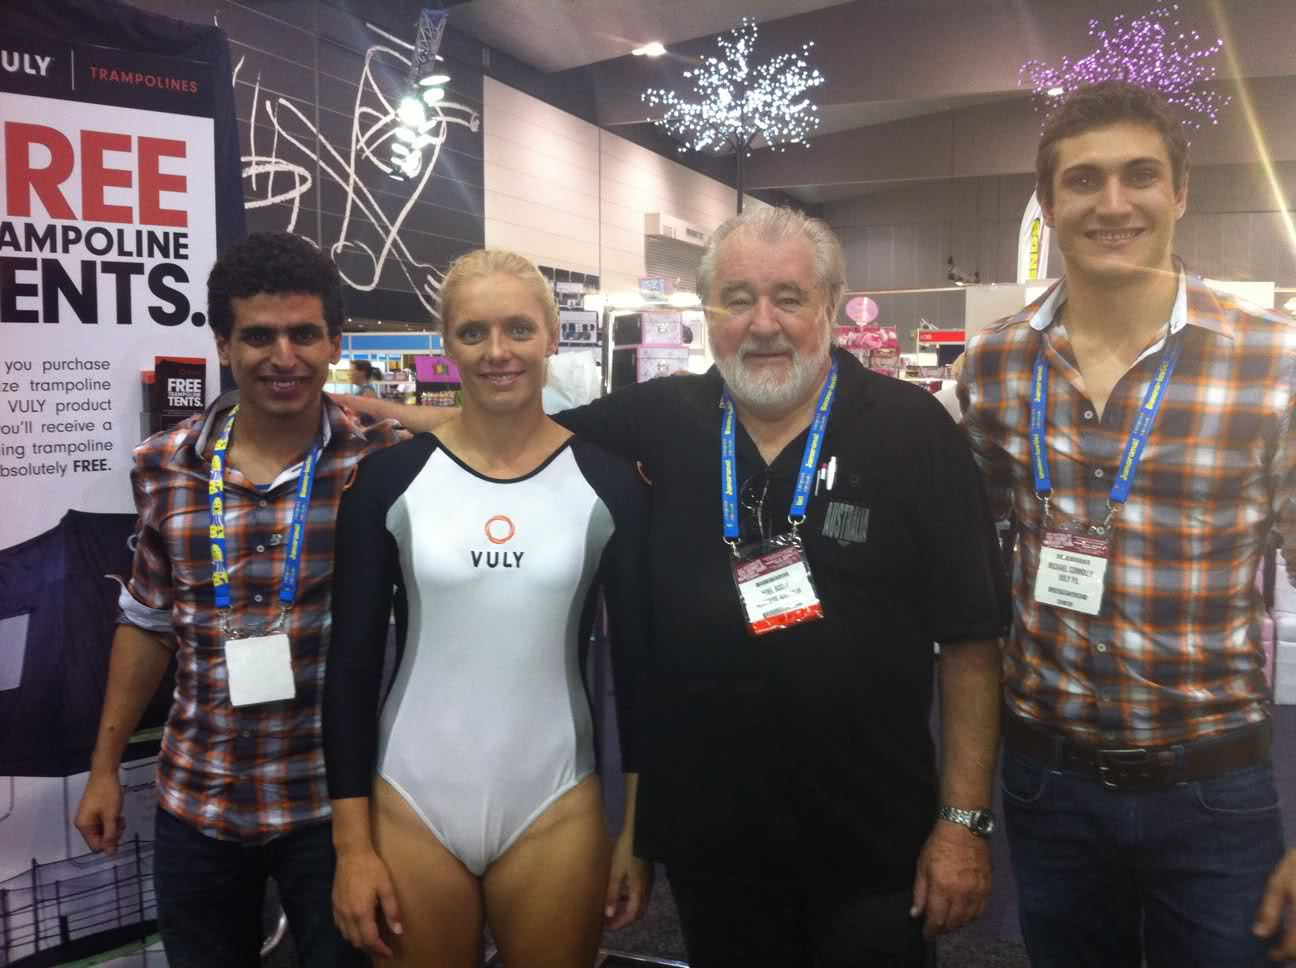 Noel Scott of HeartKids Australia with Vuly Trampolines CEO Joe Andon and Australian Trampoline Athlete Christie Jenkins